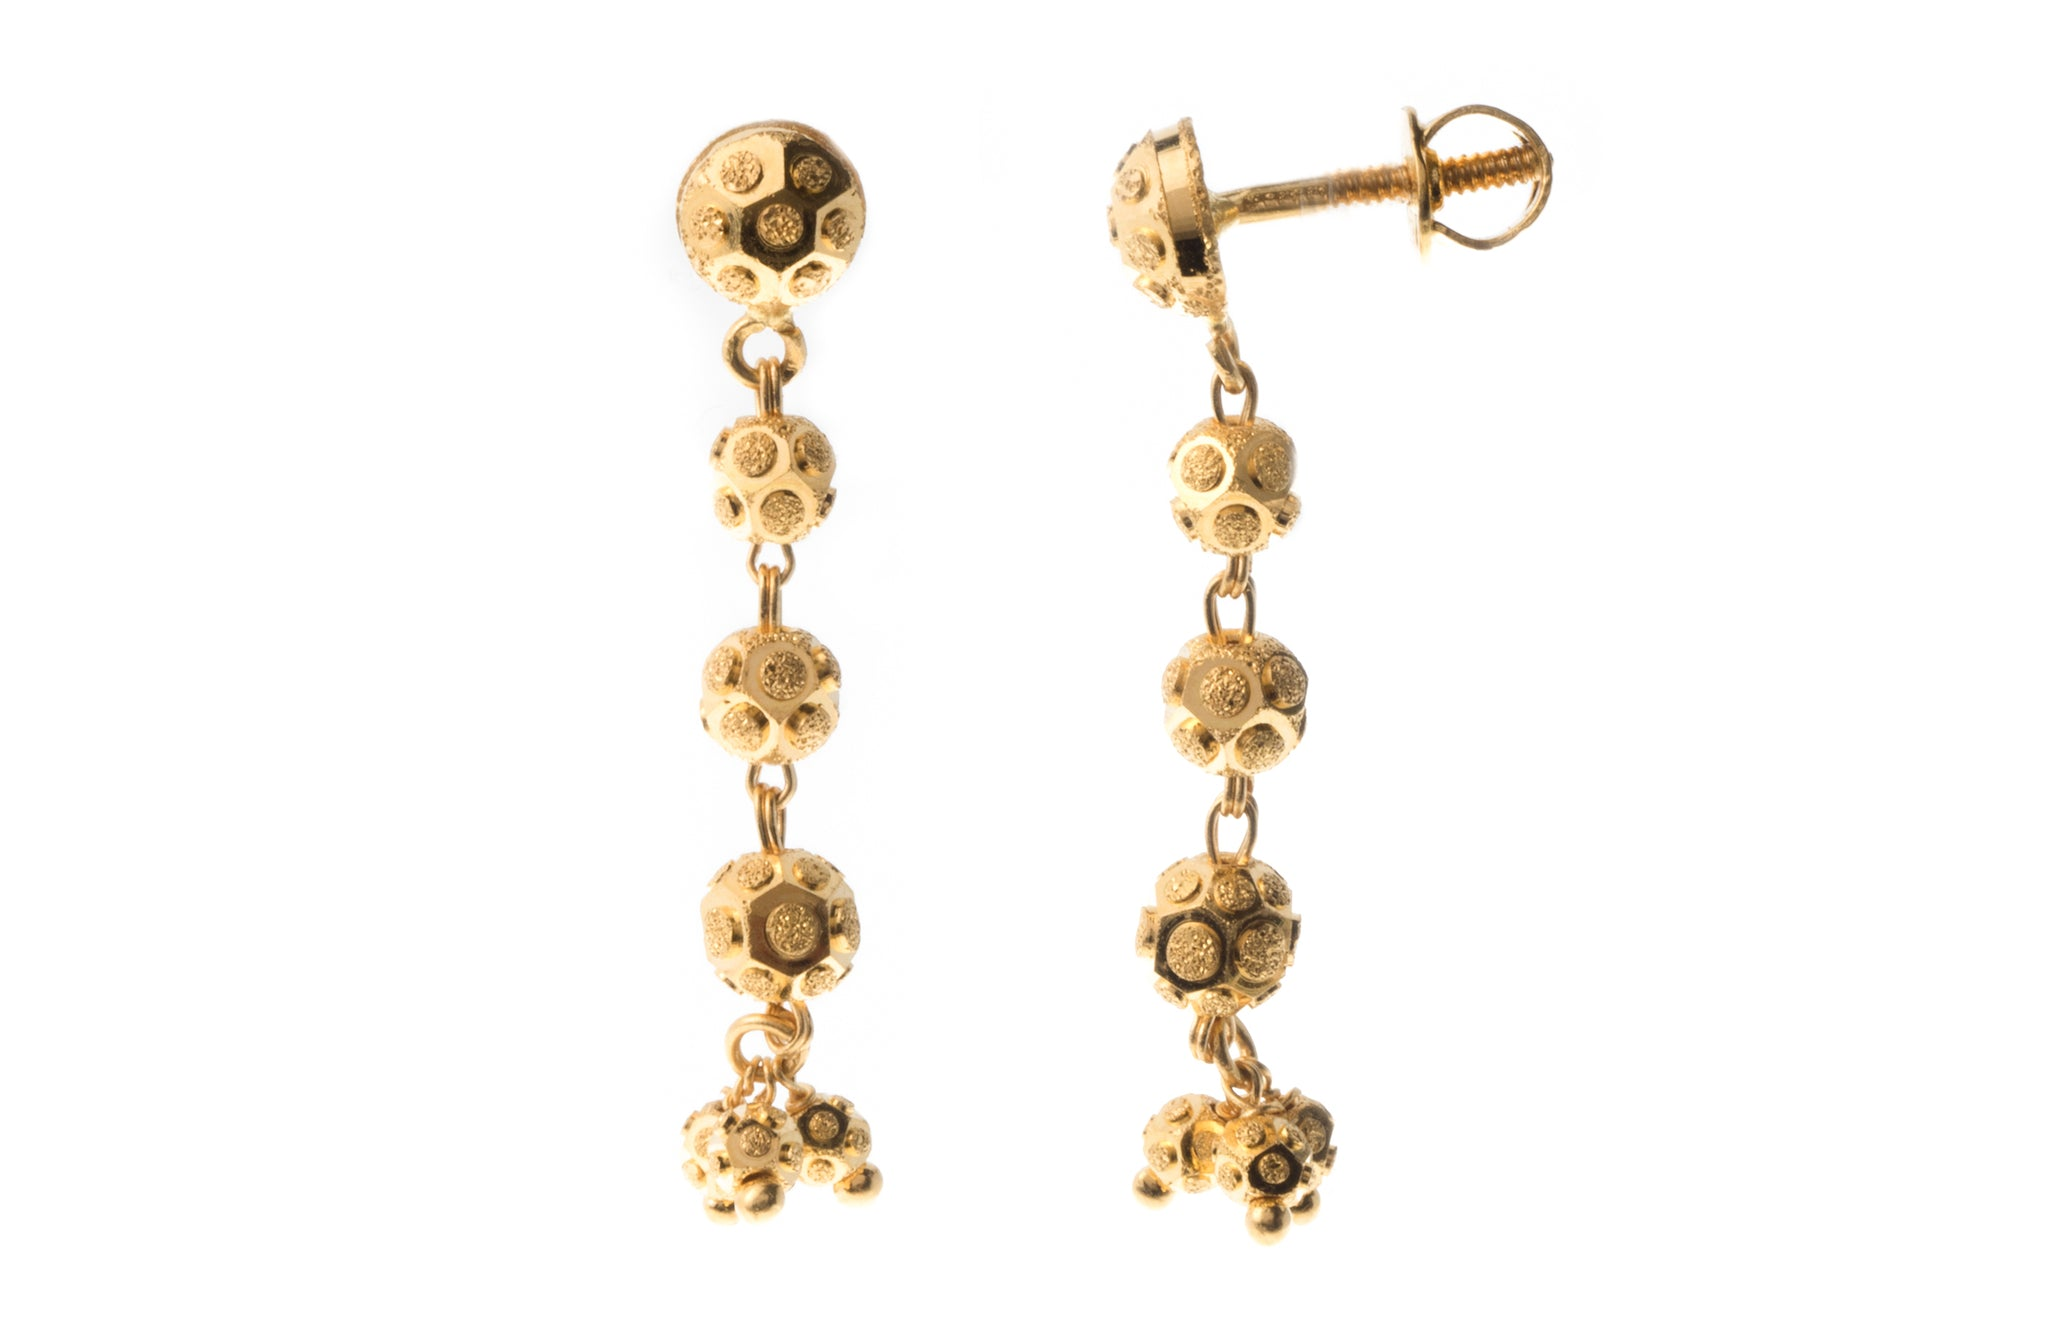 22ct Gold Drop Earrings with Diamond Cut Design and screw backs (4.7g) E-7279